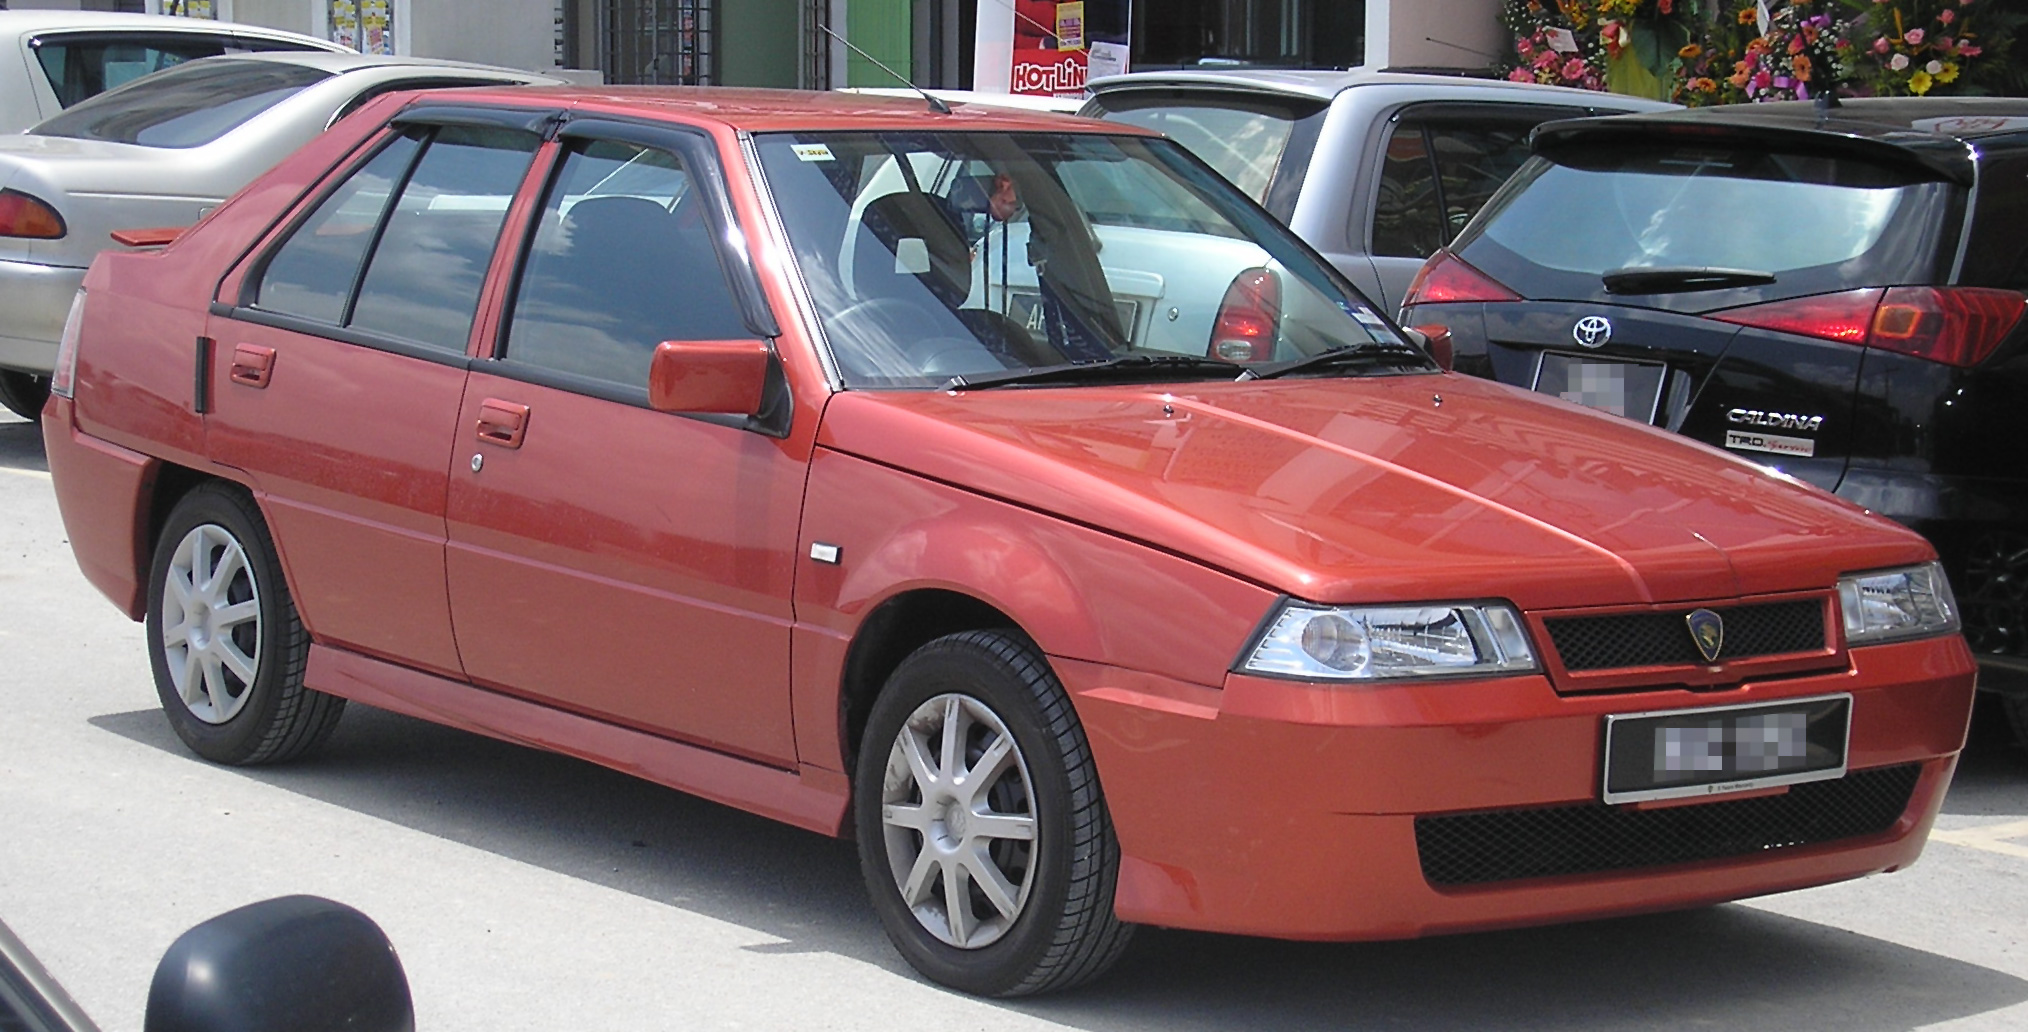 (IMG:http://upload.wikimedia.org/wikipedia/commons/2/2e/Proton_Saga_%28re-release%3B_third_facelift%29_%28front%29%2C_Serdang.jpg)